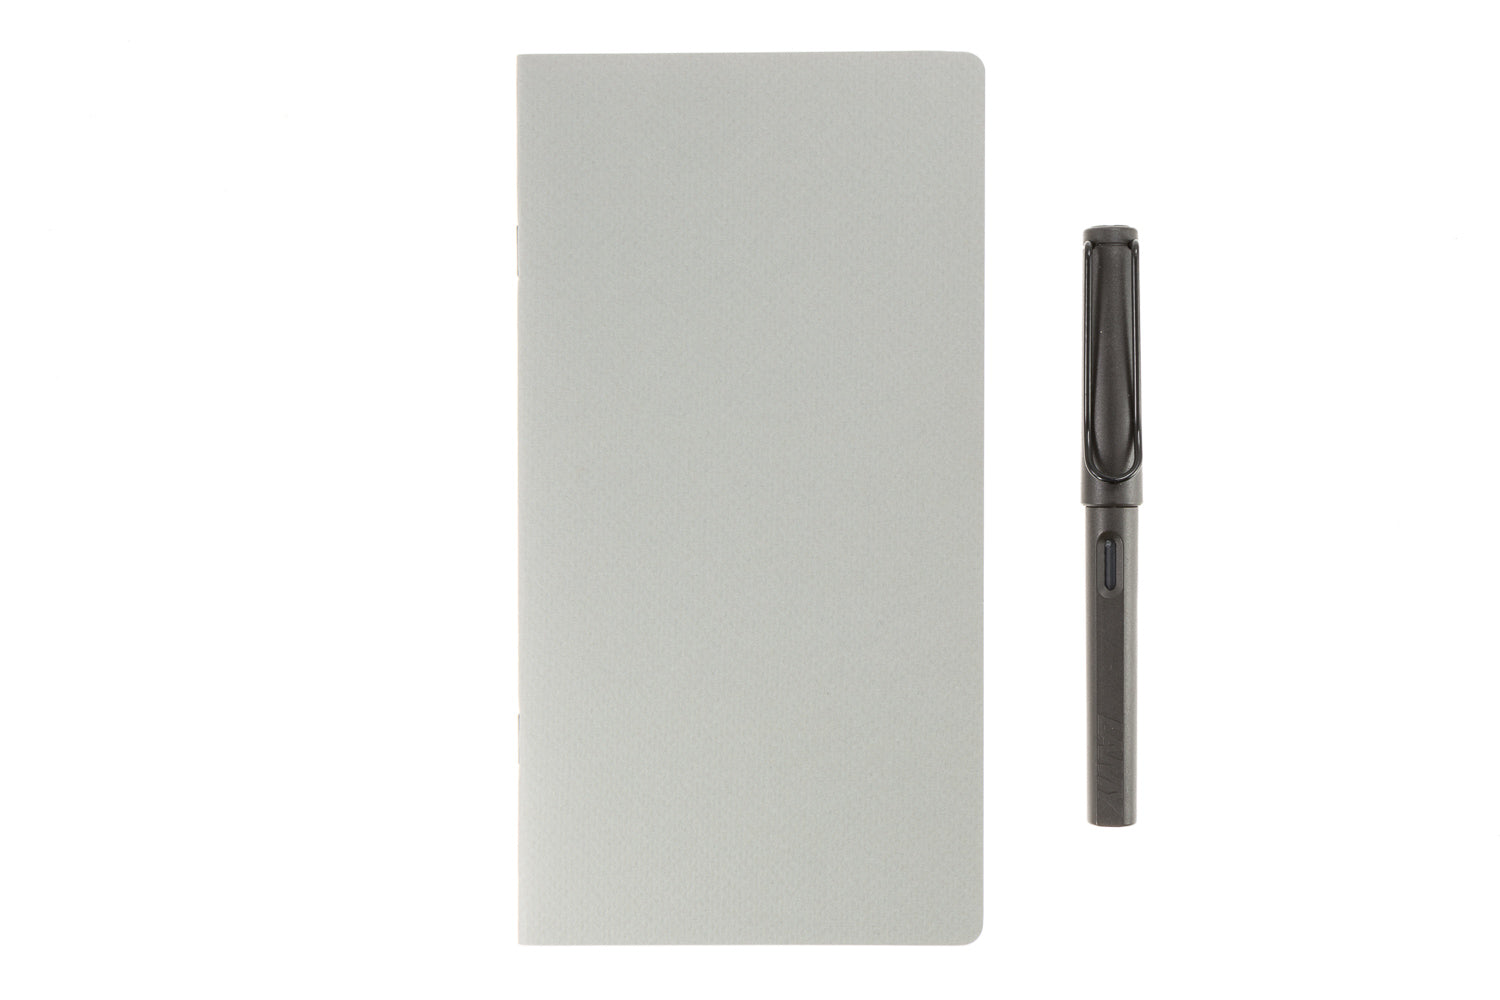 Goulet Notebook w/ 52gsm Tomoe River Paper - Regular TN, Dot Grid